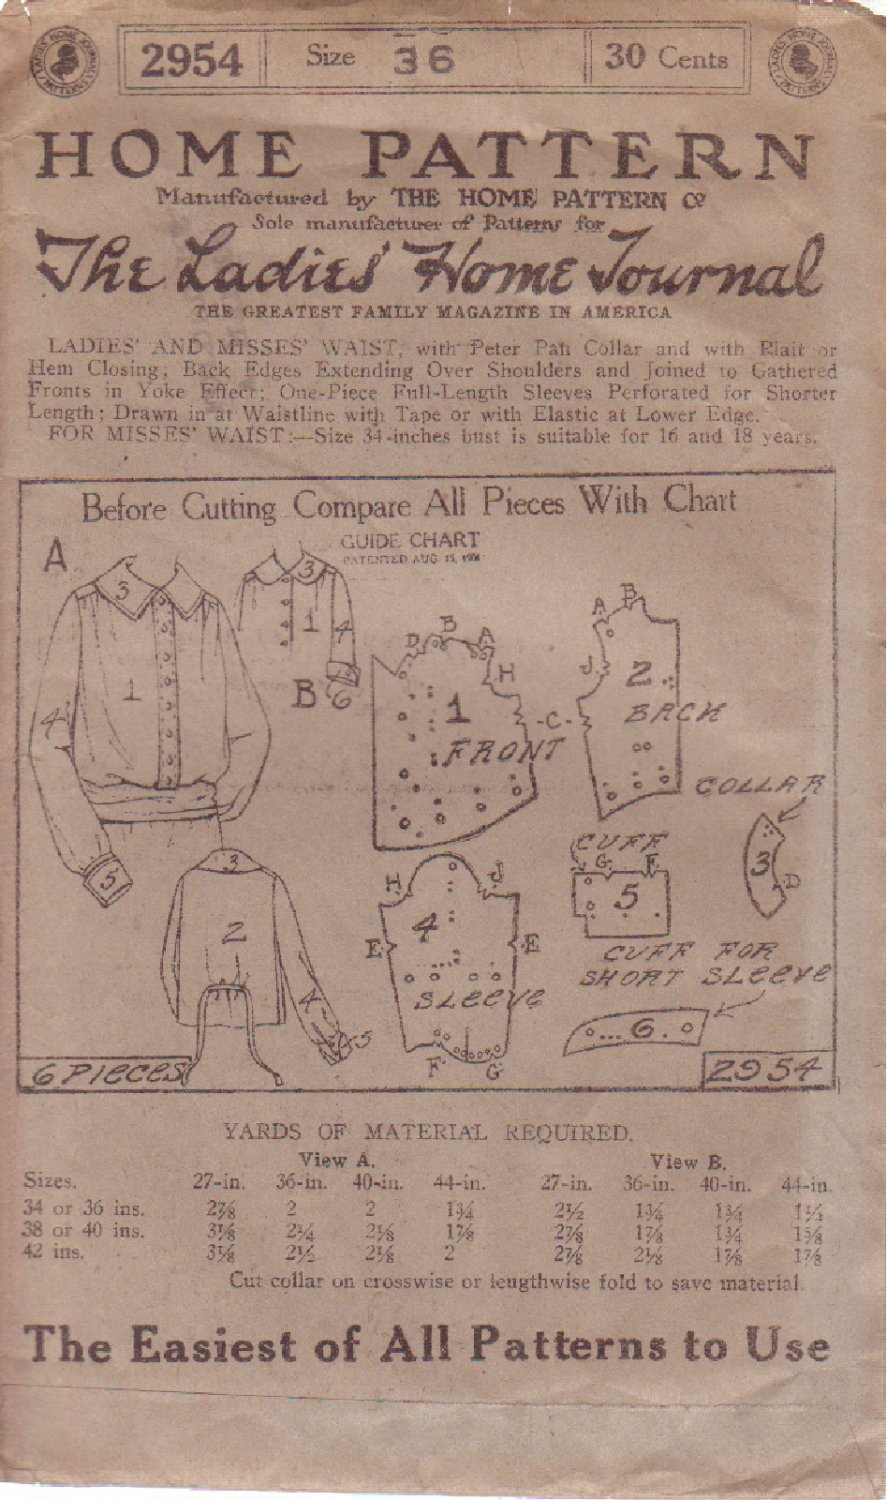 LADIES HOME JOURNAL PATTERN 2954 DATED 1908 MISSES' BLOUSE SZ 46